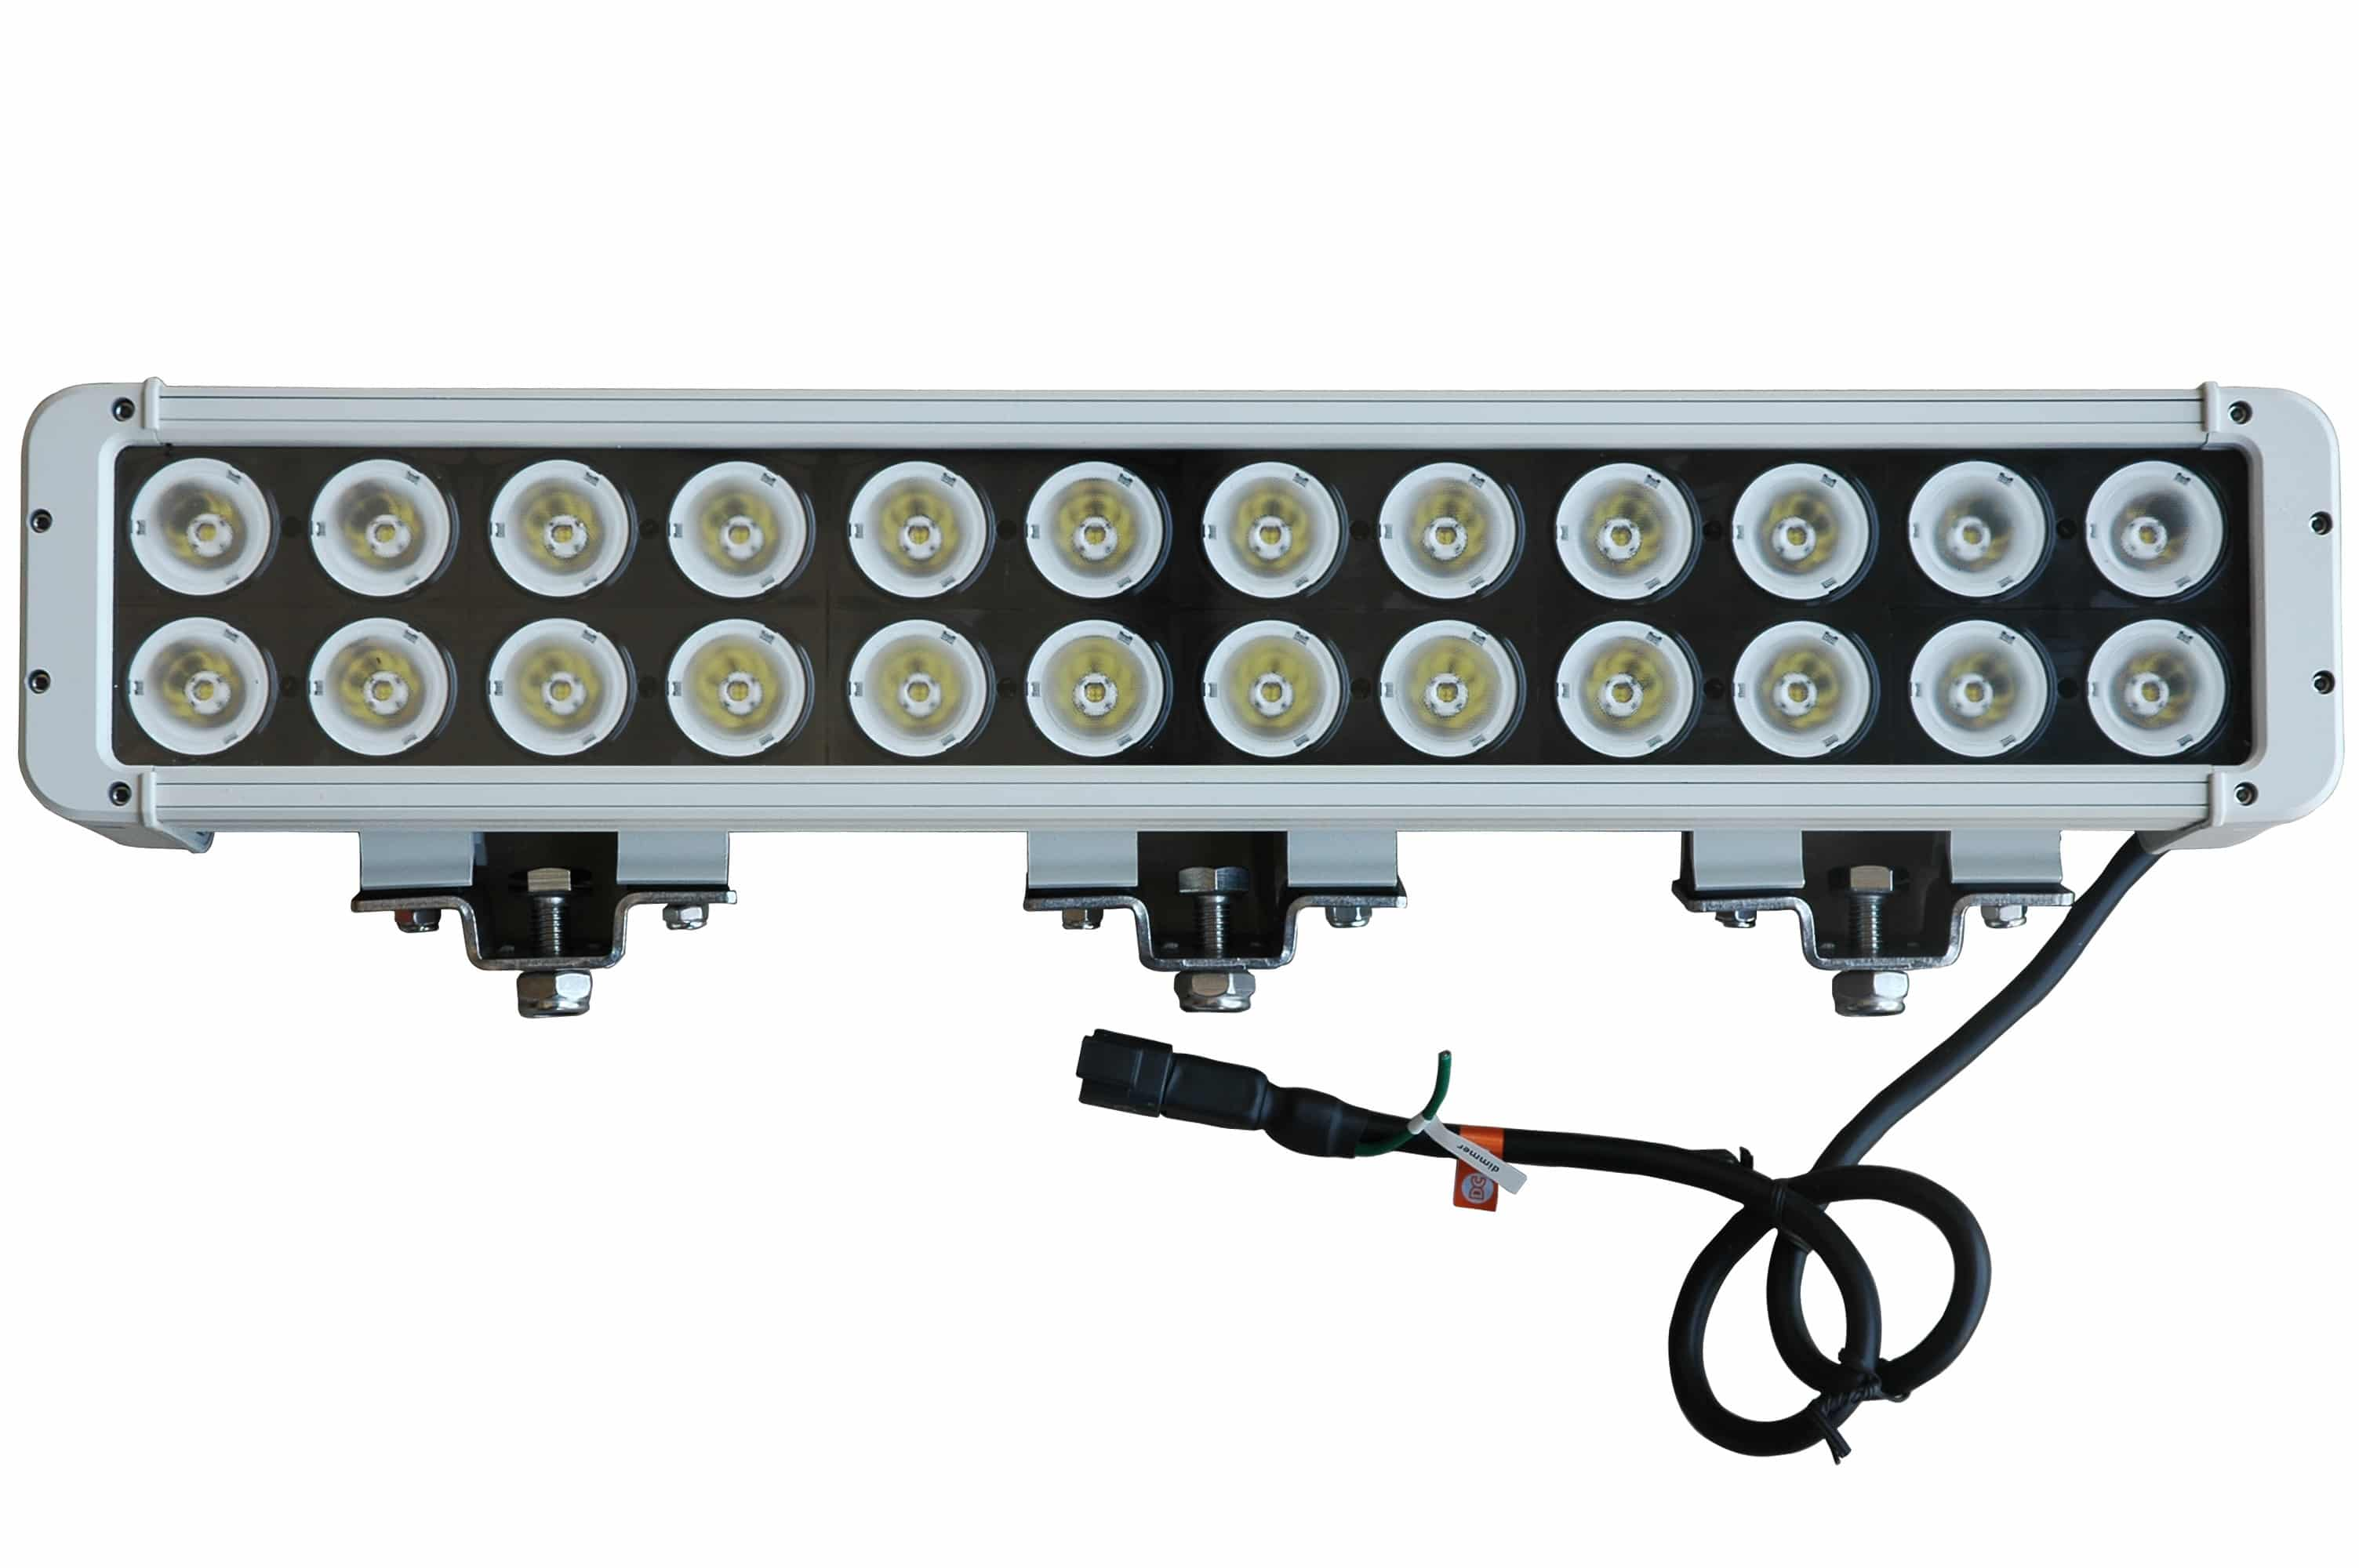 High power led light bars for marine and boating applications high power led light bars for marine and boating applications aloadofball